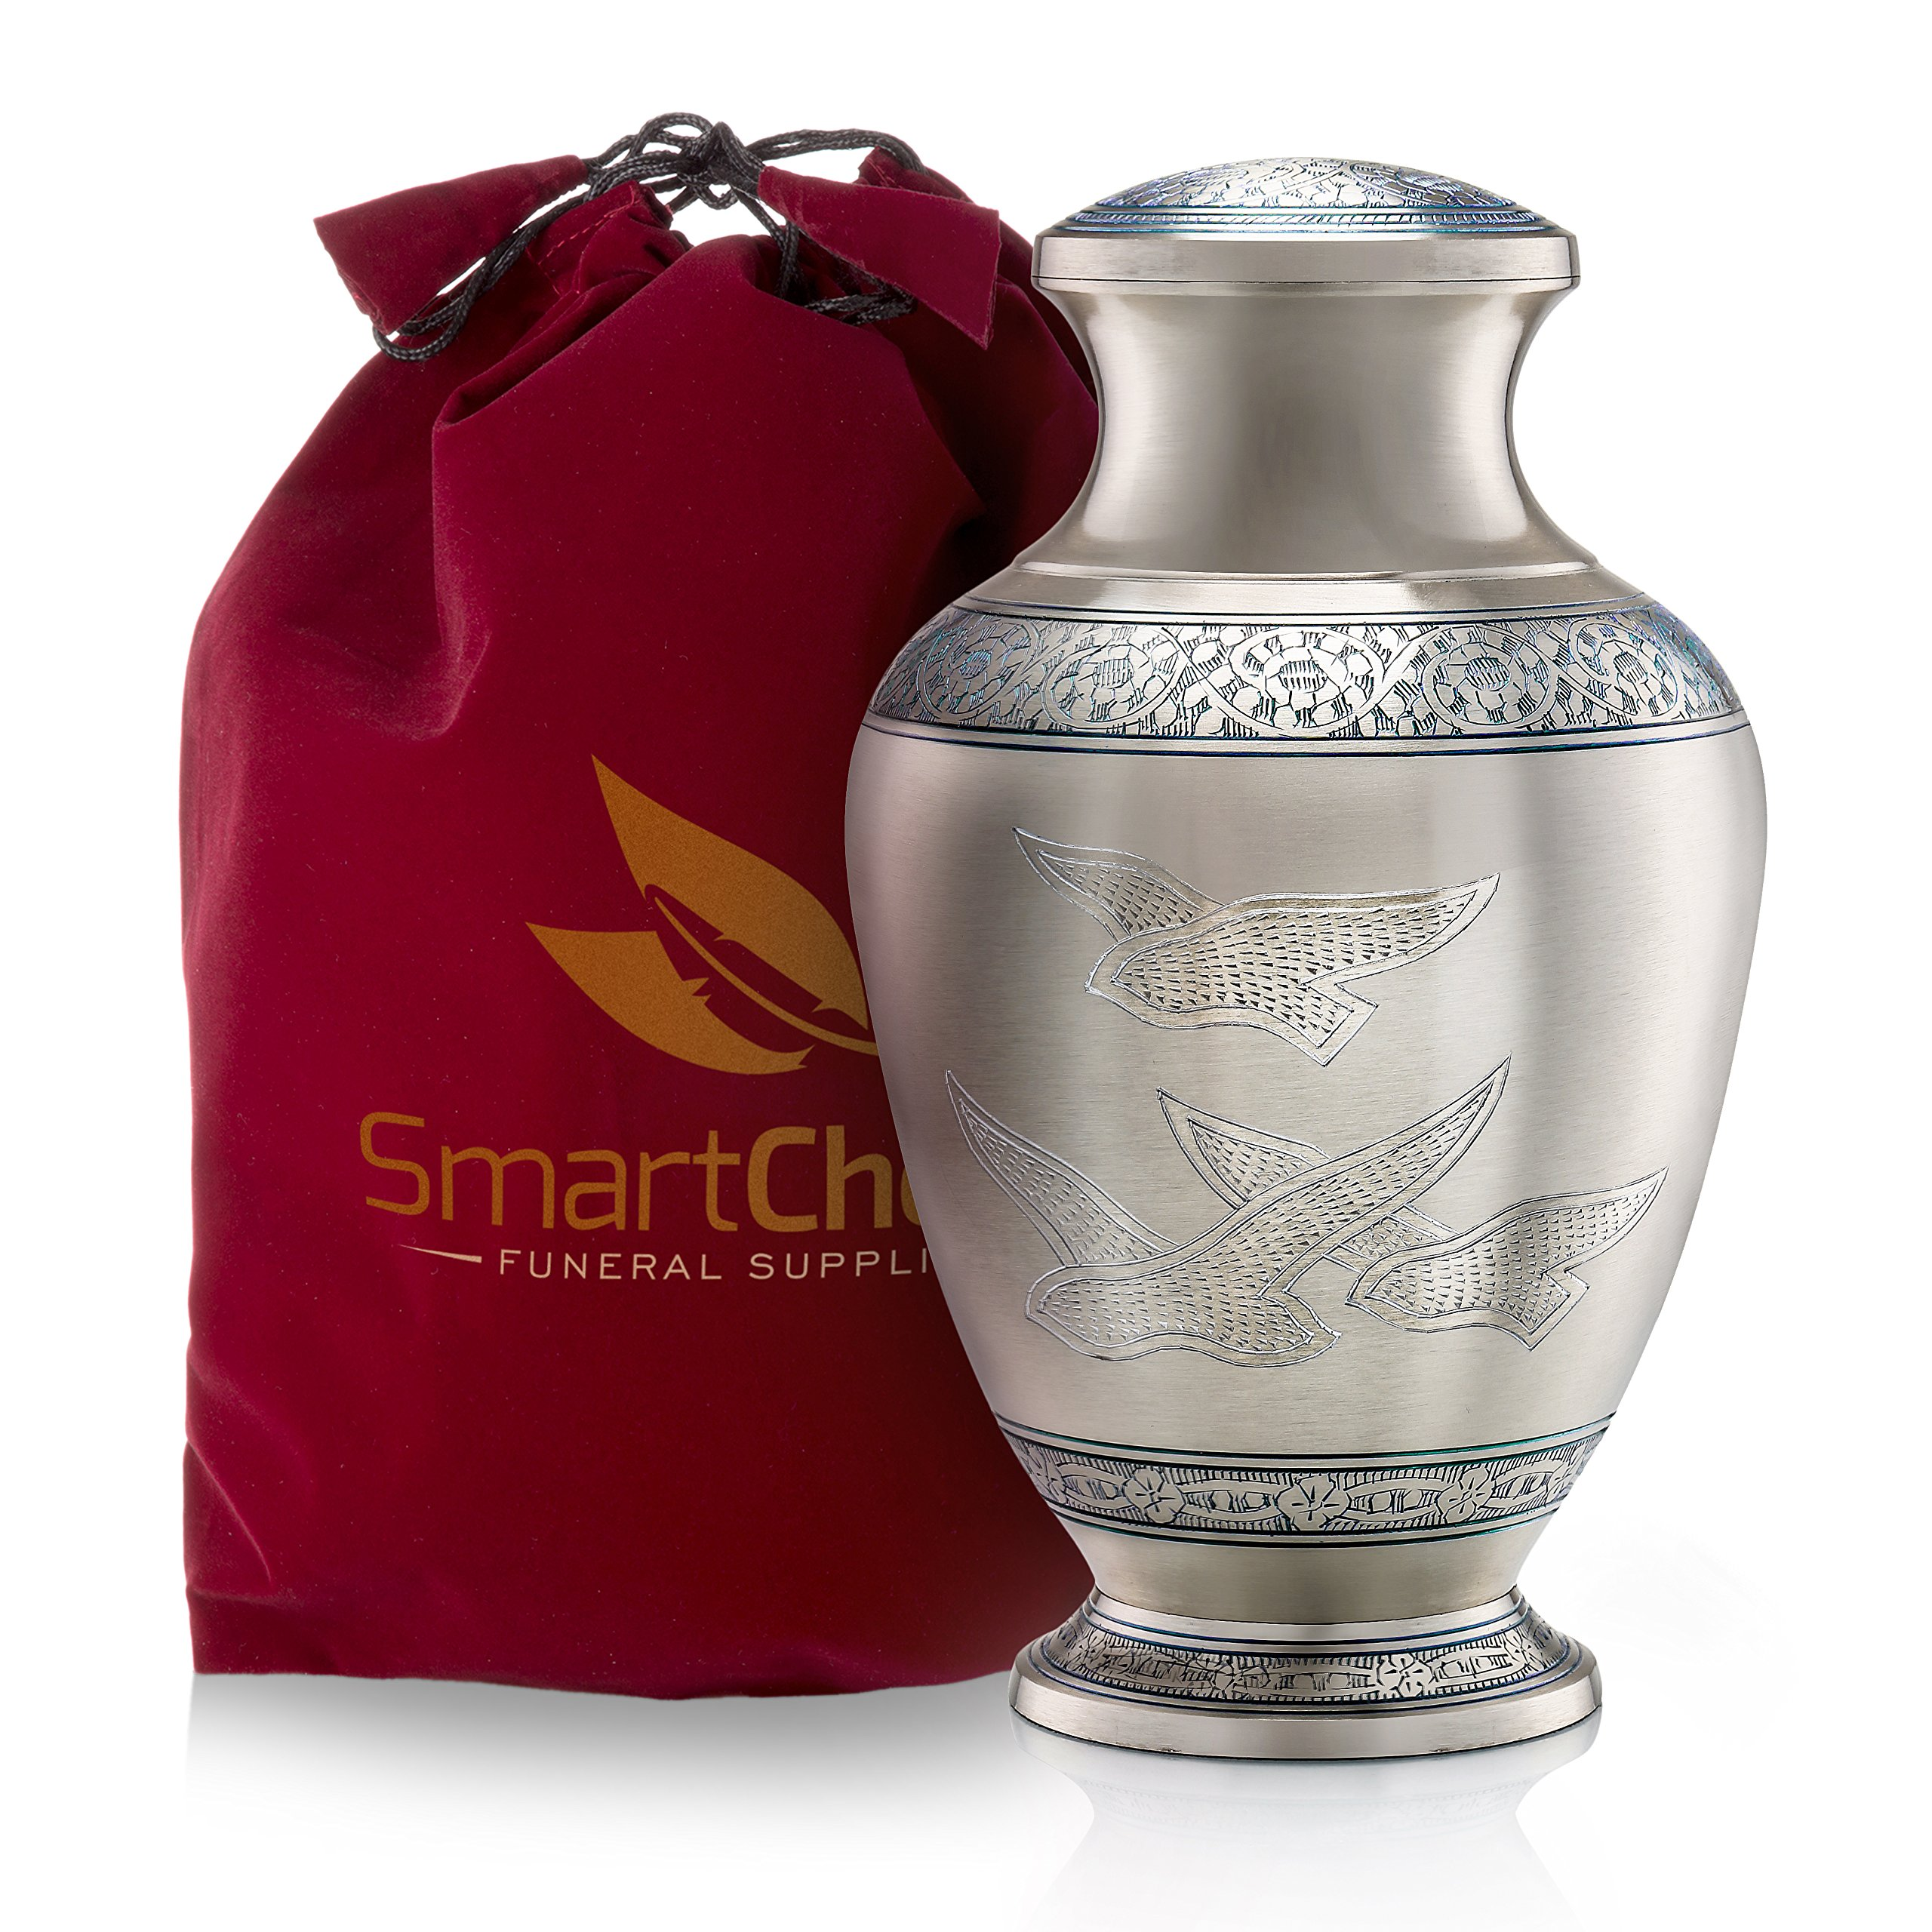 SmartChoice Wings of Freedom Cremation Urn for Human Ashes - Beautiful Funeral Urn Adult Urn for Ashes Handcrafted Urn (Adult) by SmartChoice